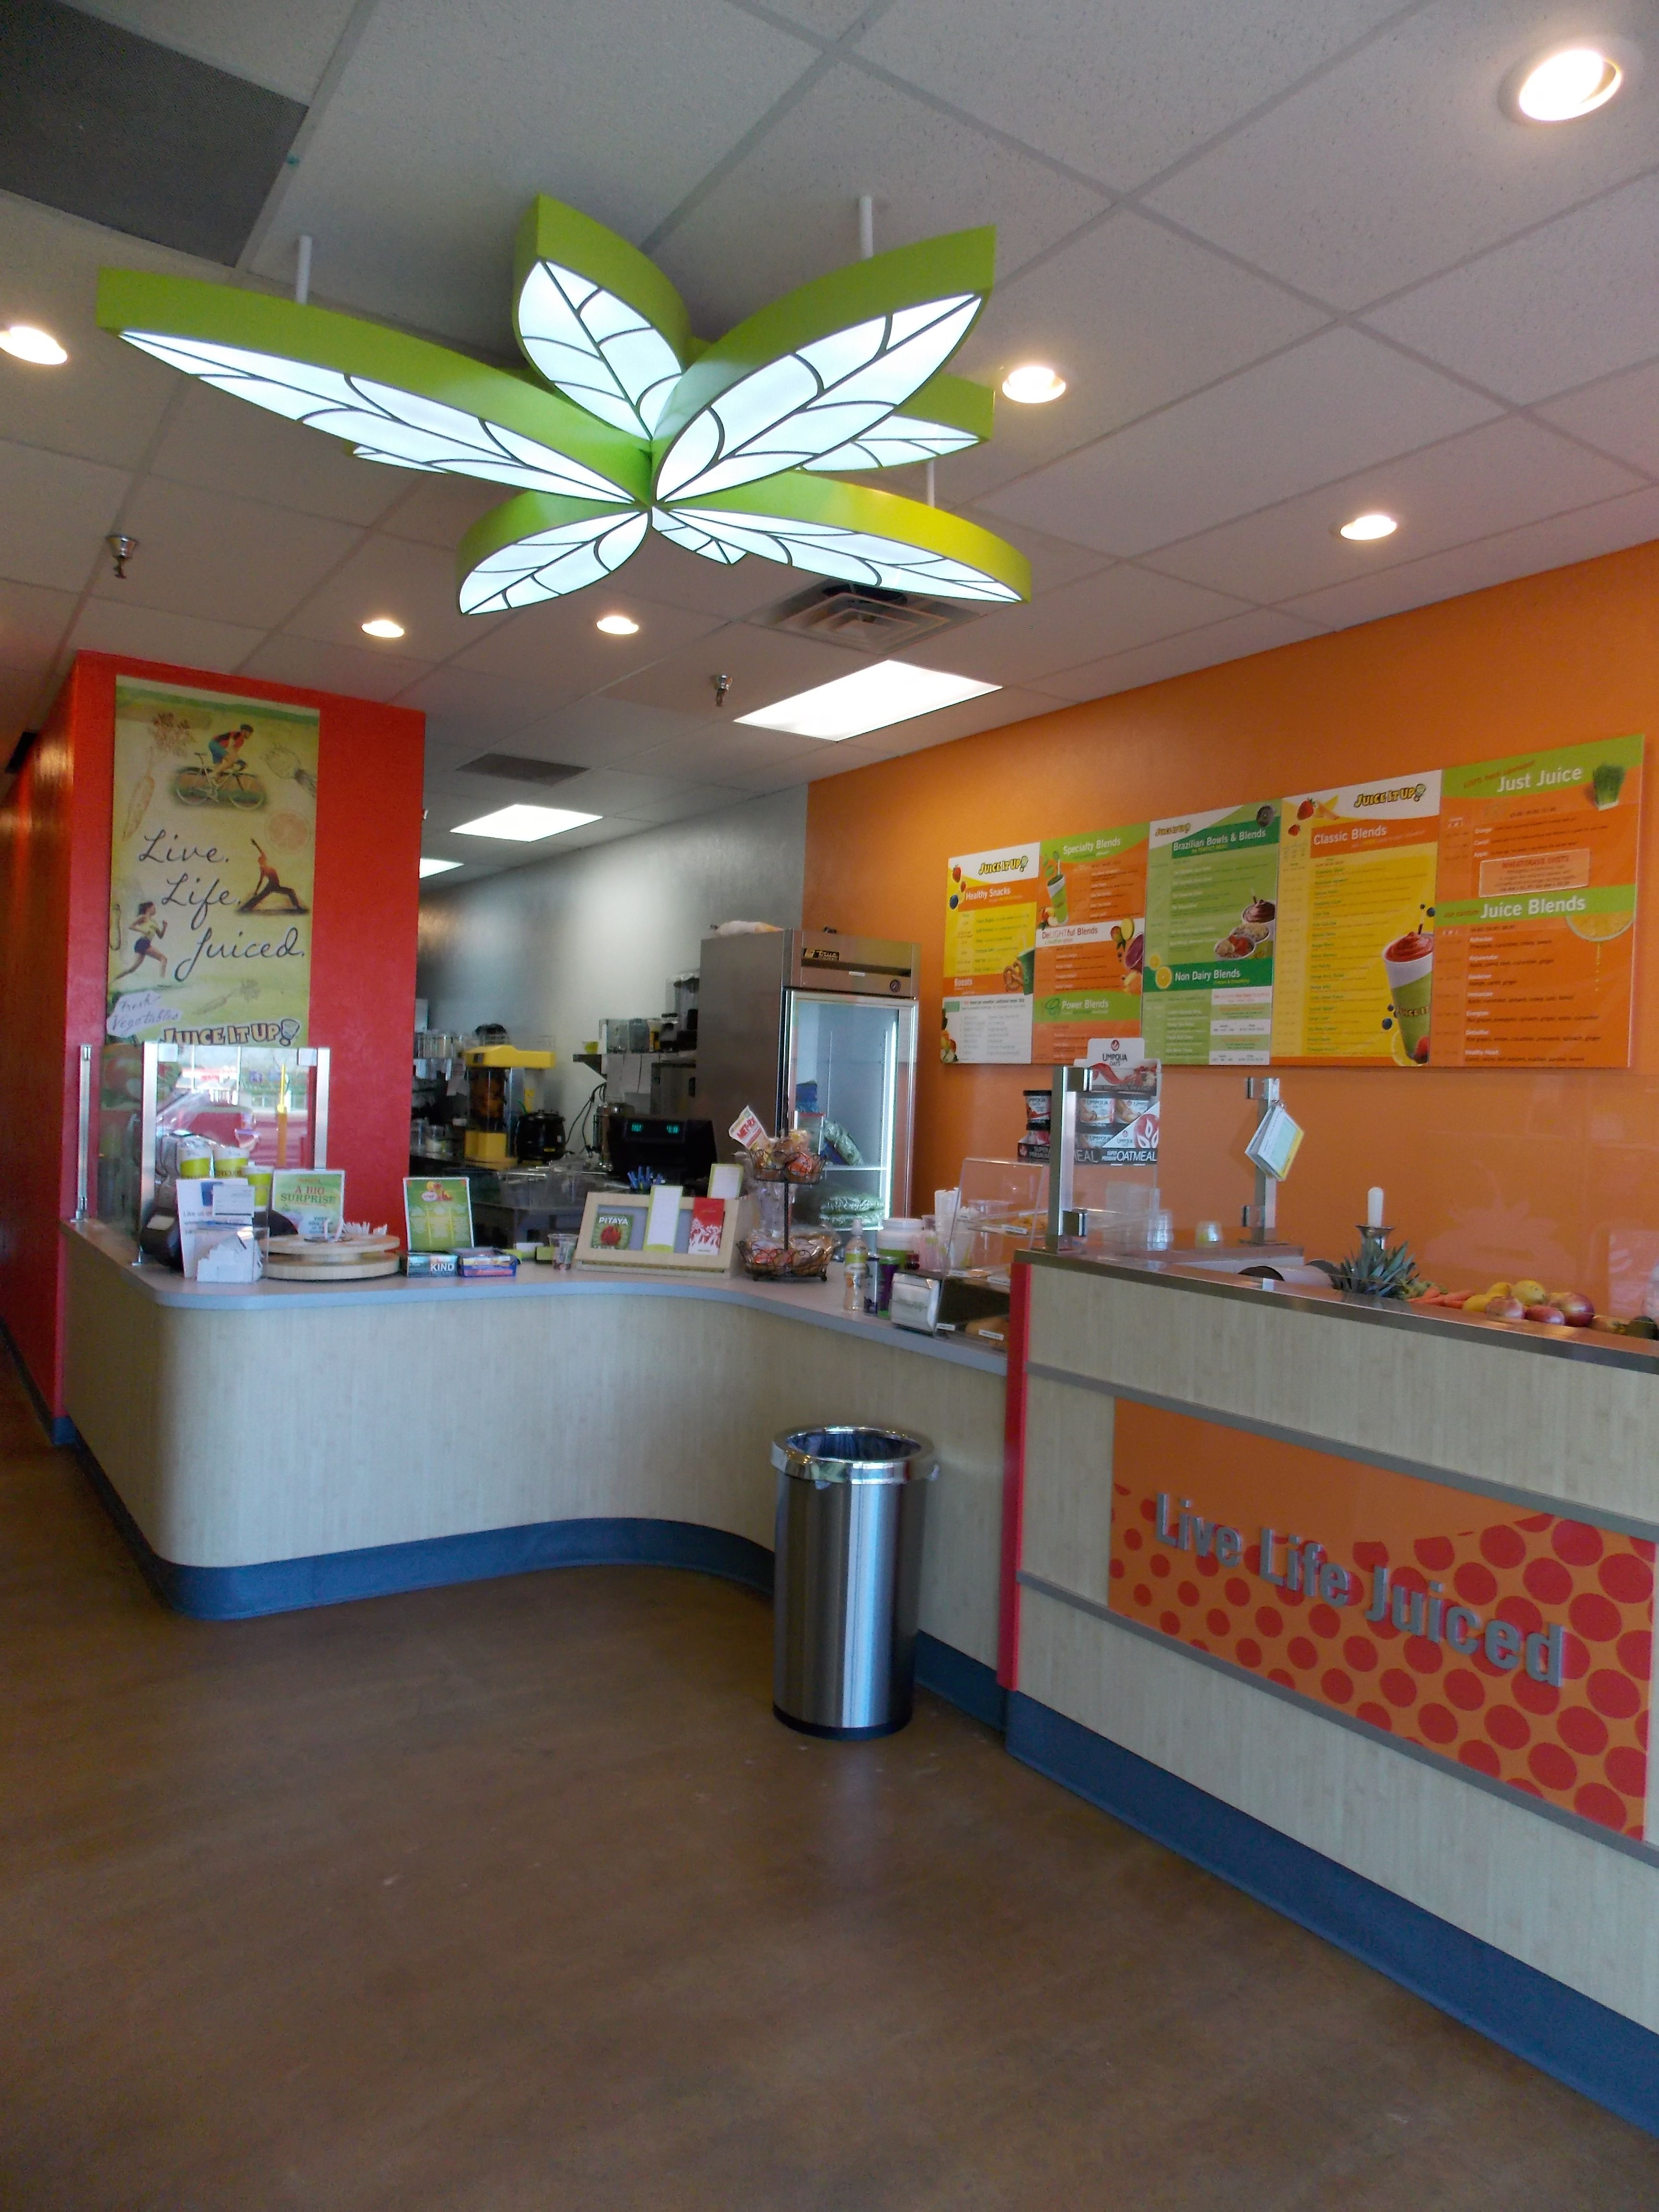 Albuquerqueu0027s Premier Raw Juice Bar Offering Fresh Squeezed Juices, Real  Fruit Smoothies, Protein Shakes